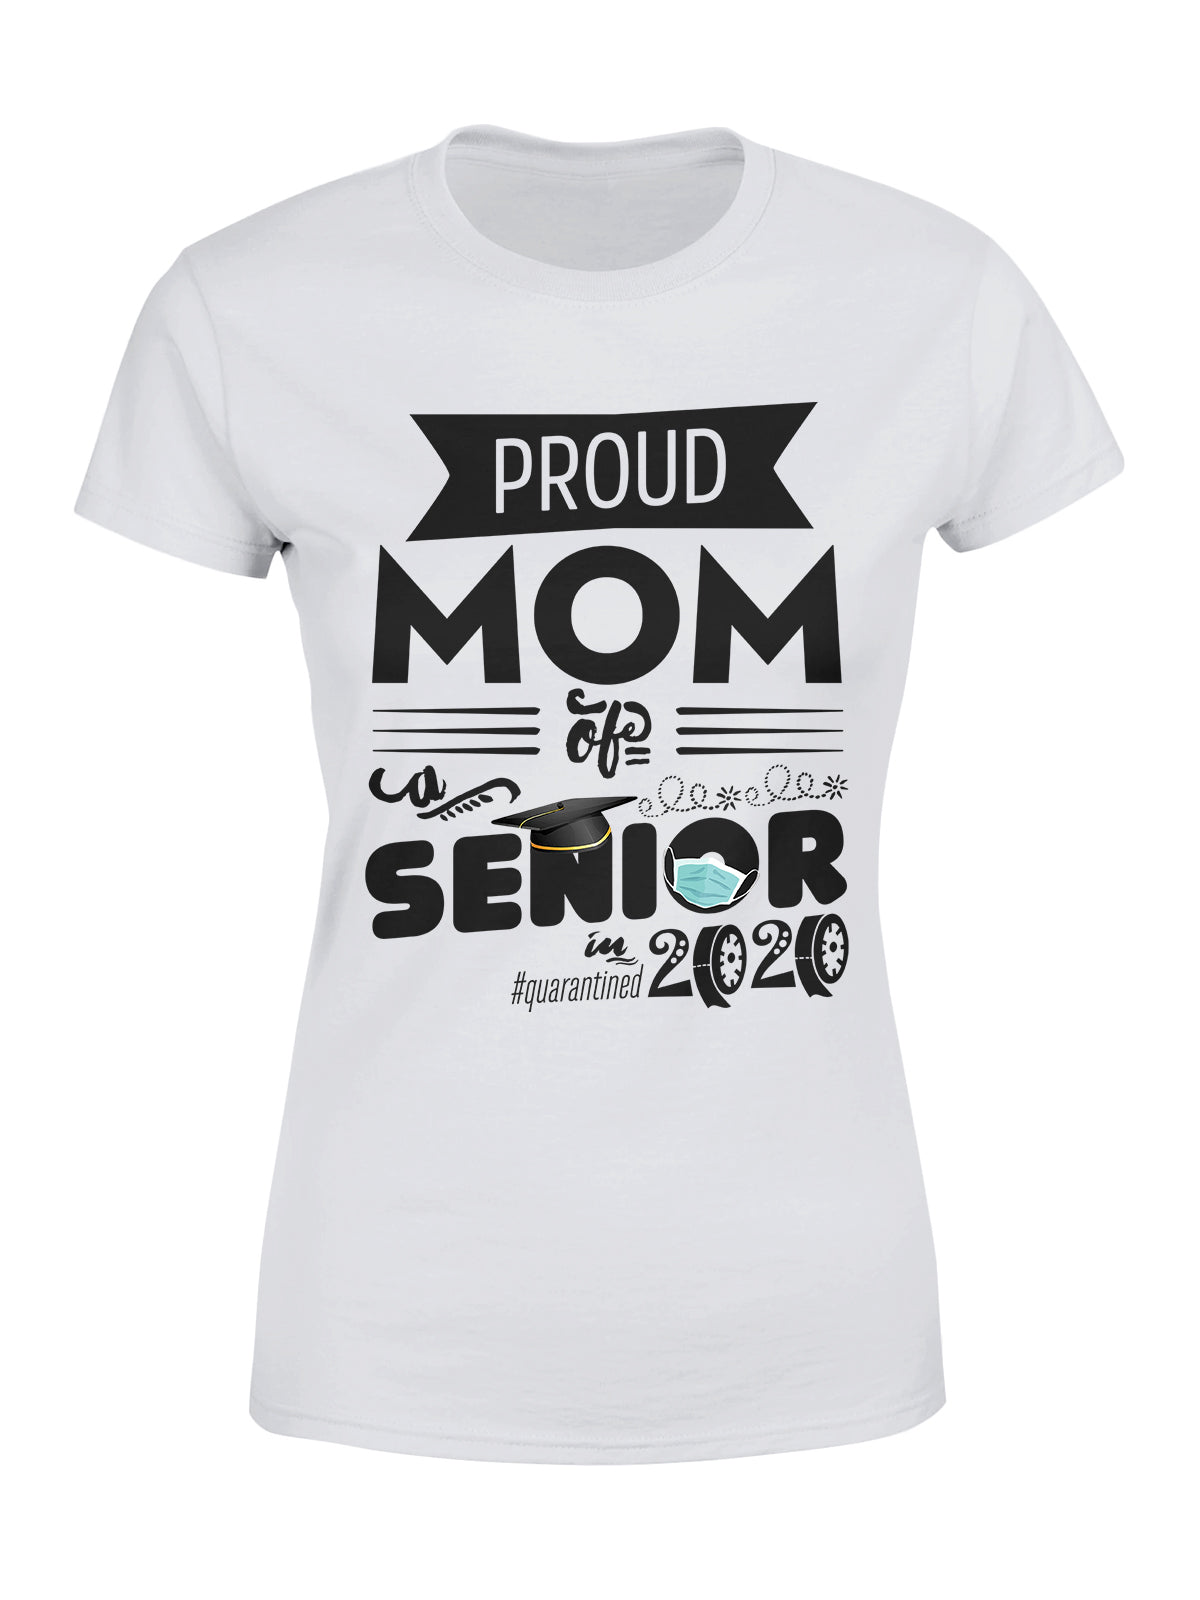 Standard Women's T-shirt - Proud Mom Of A Senior 2020 Quarantined - Quarantine Women T-shirt, Mom Of Senior, Senior 2020